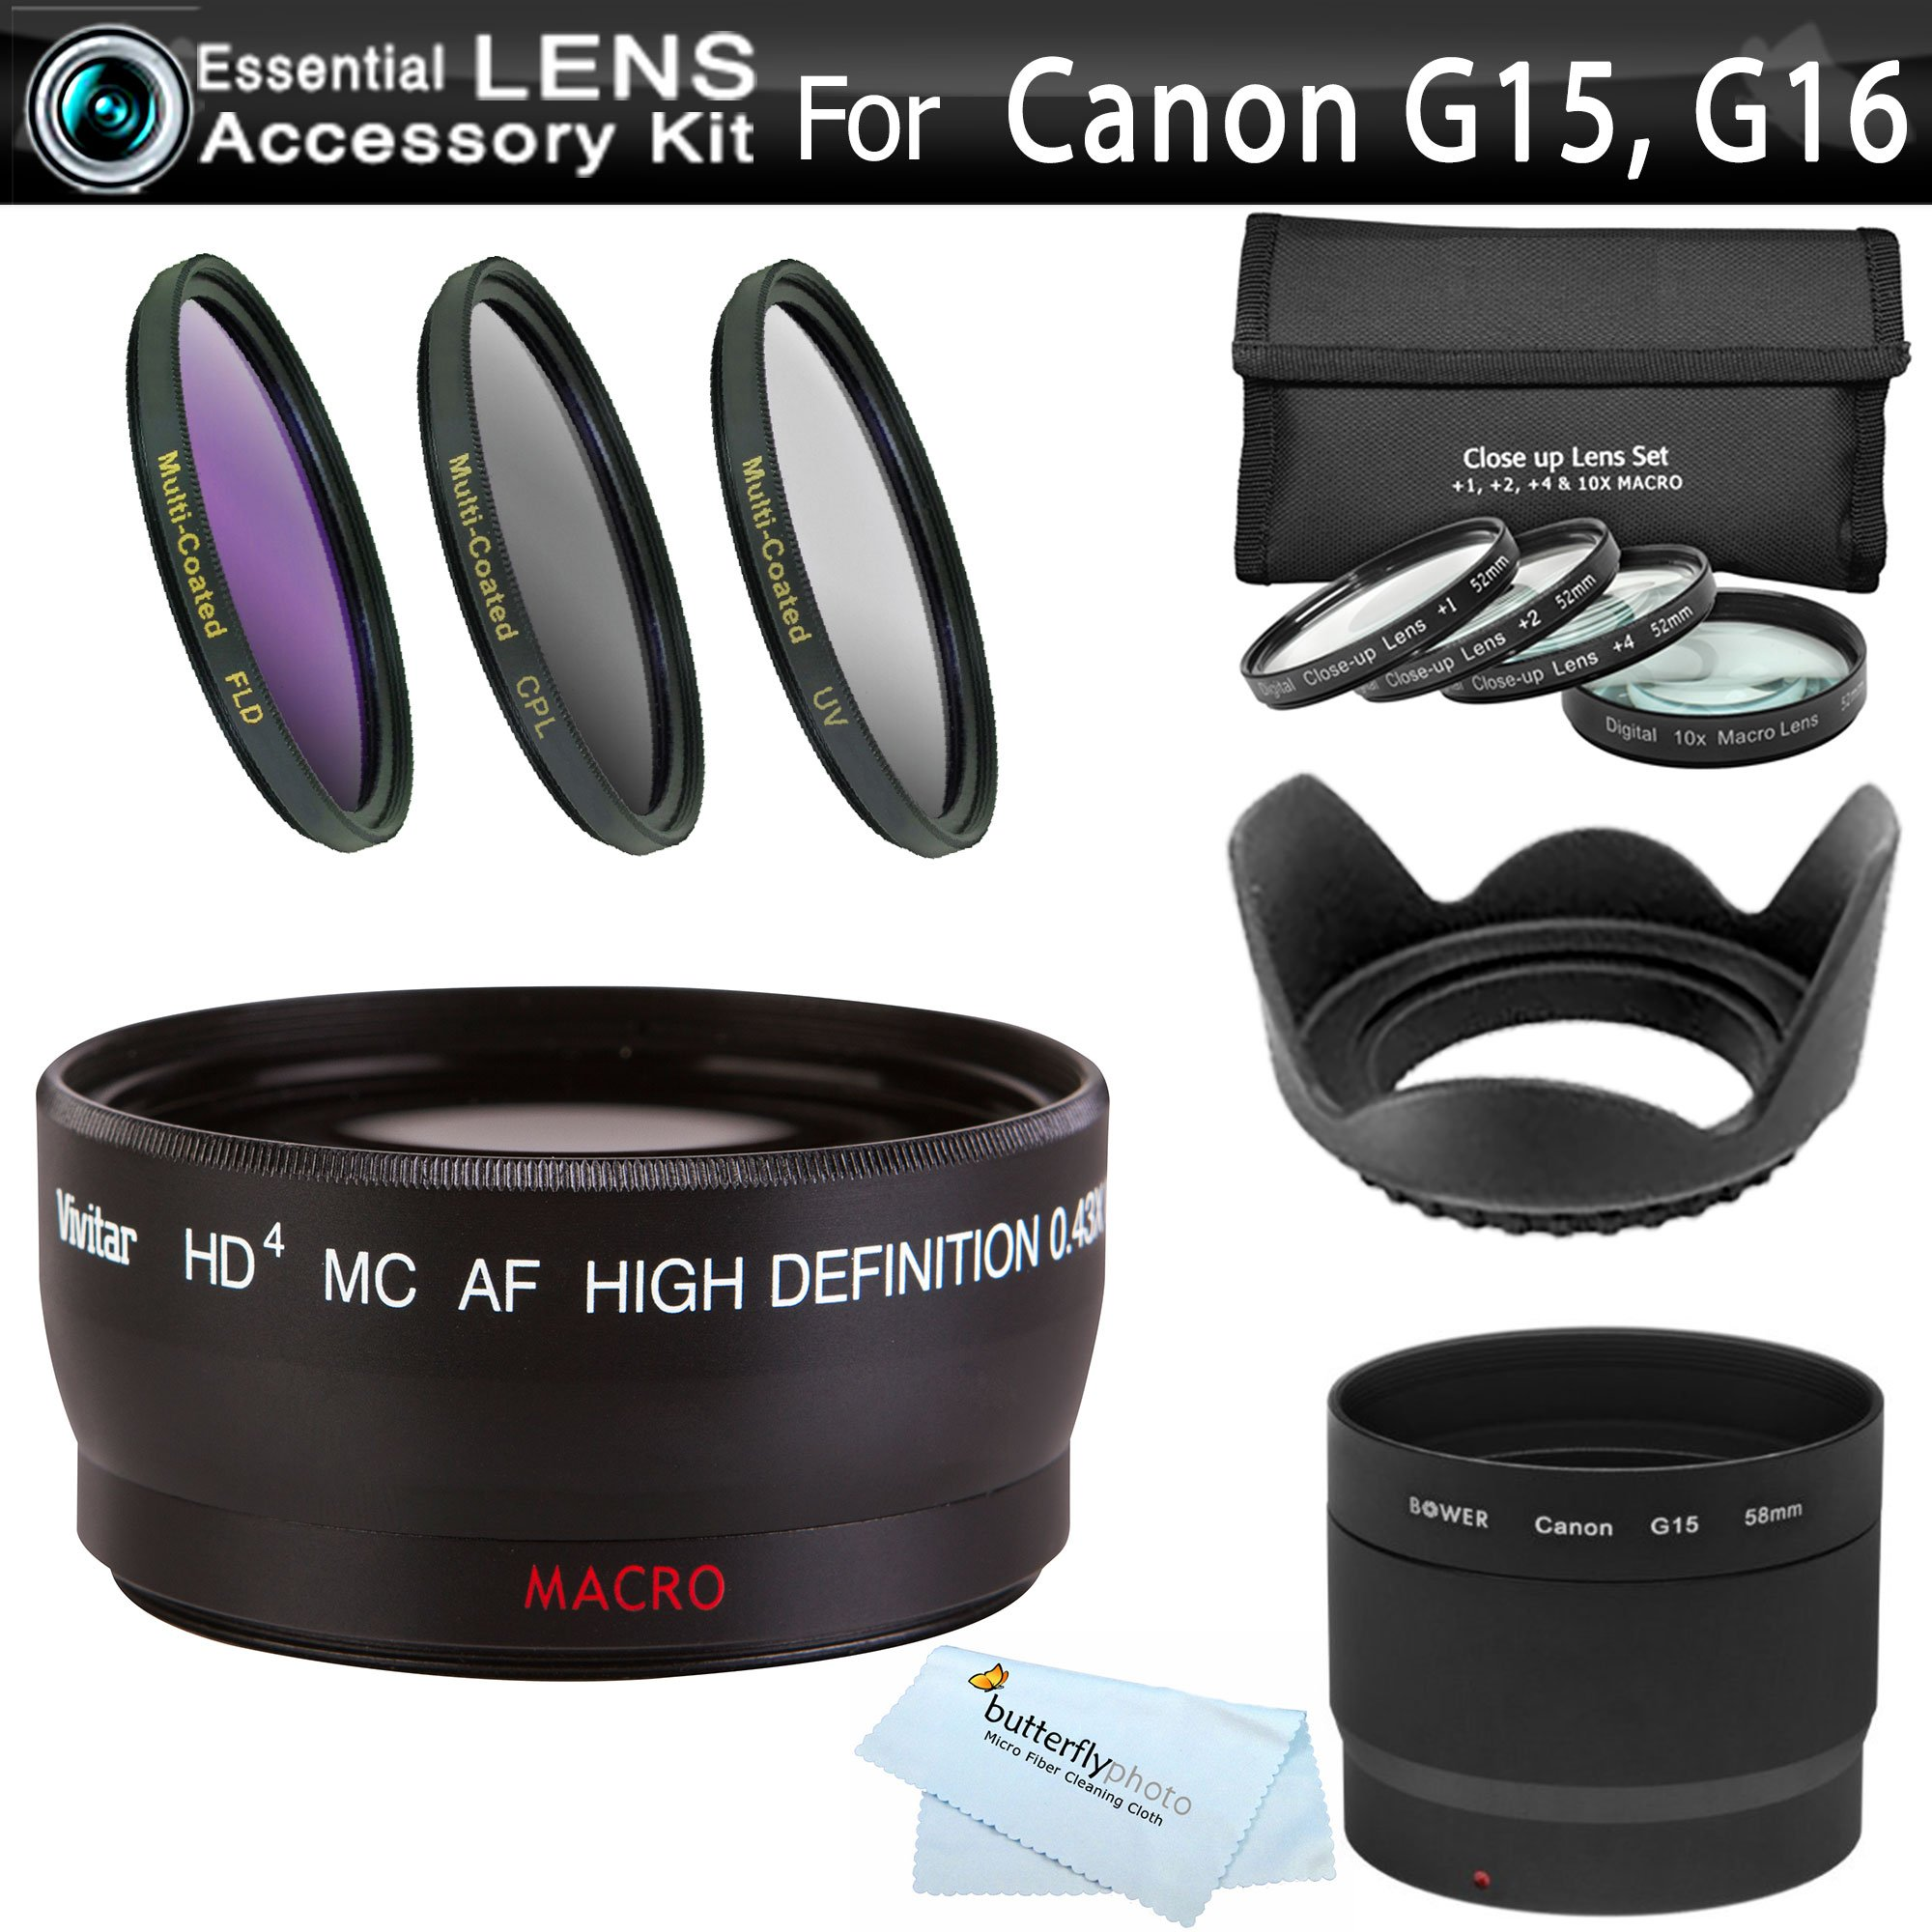 Essential Lens Kit For Canon PowerShot G15, G16 Digital Camera Includes Necessary Replacement LA-DC58L Adapter + 58mm Wide Angle Lens + 58MM Close Up Lens Kit Includes +1 +2 +4 +10 + 3pc Filter Kit ++ by Butterfly